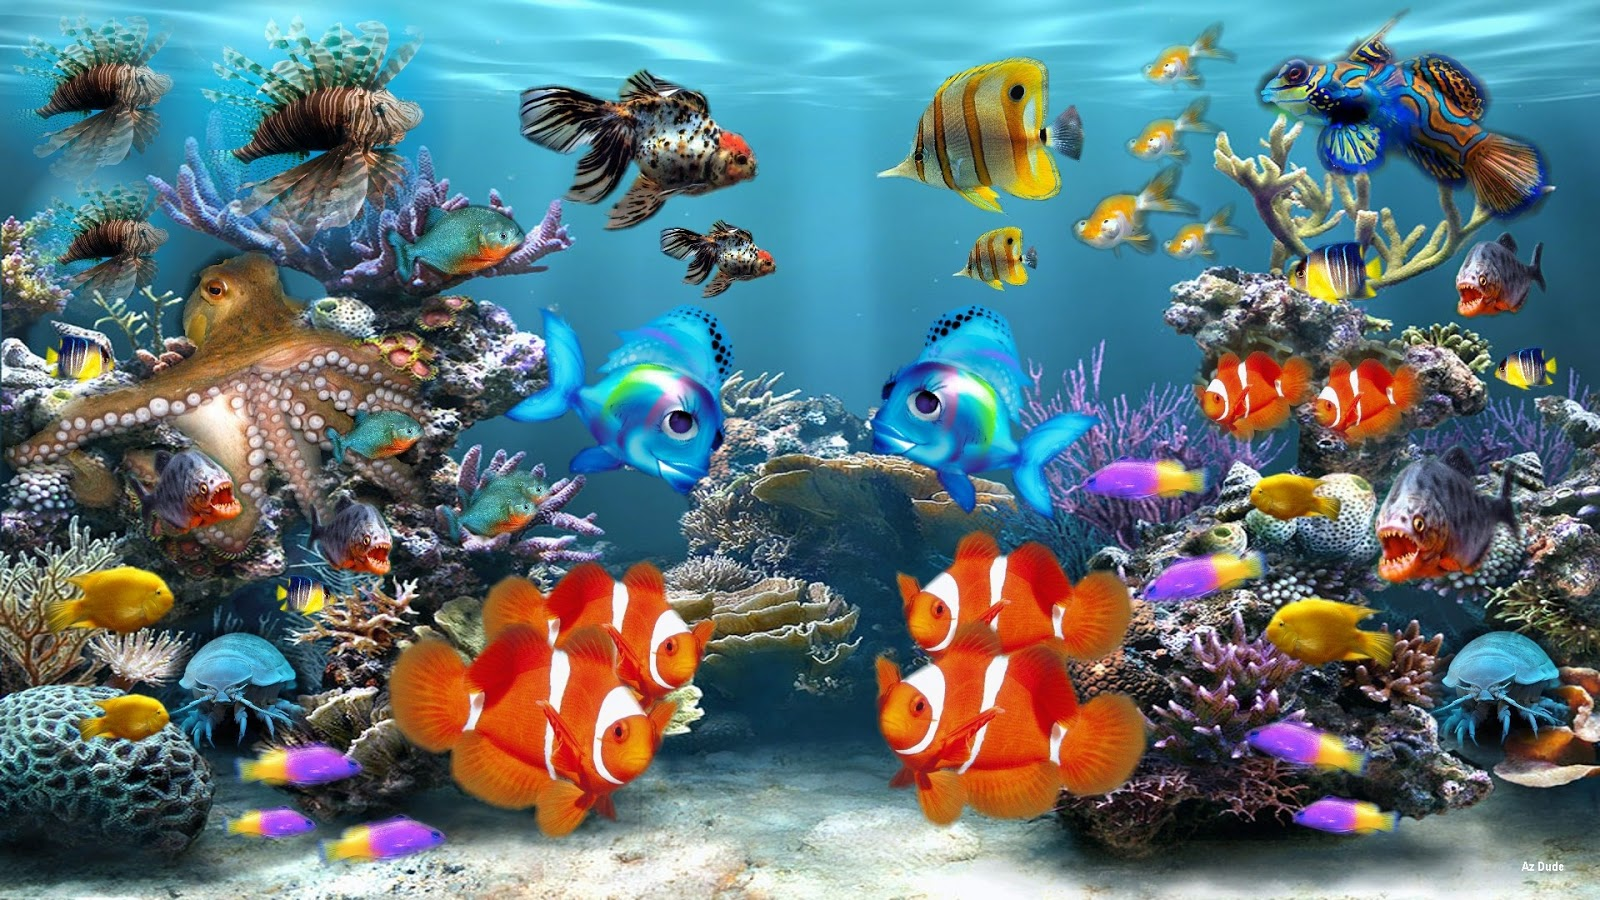 Aquarium Hd Wallpaper Aquarium Wallpaper Best 2 Travel